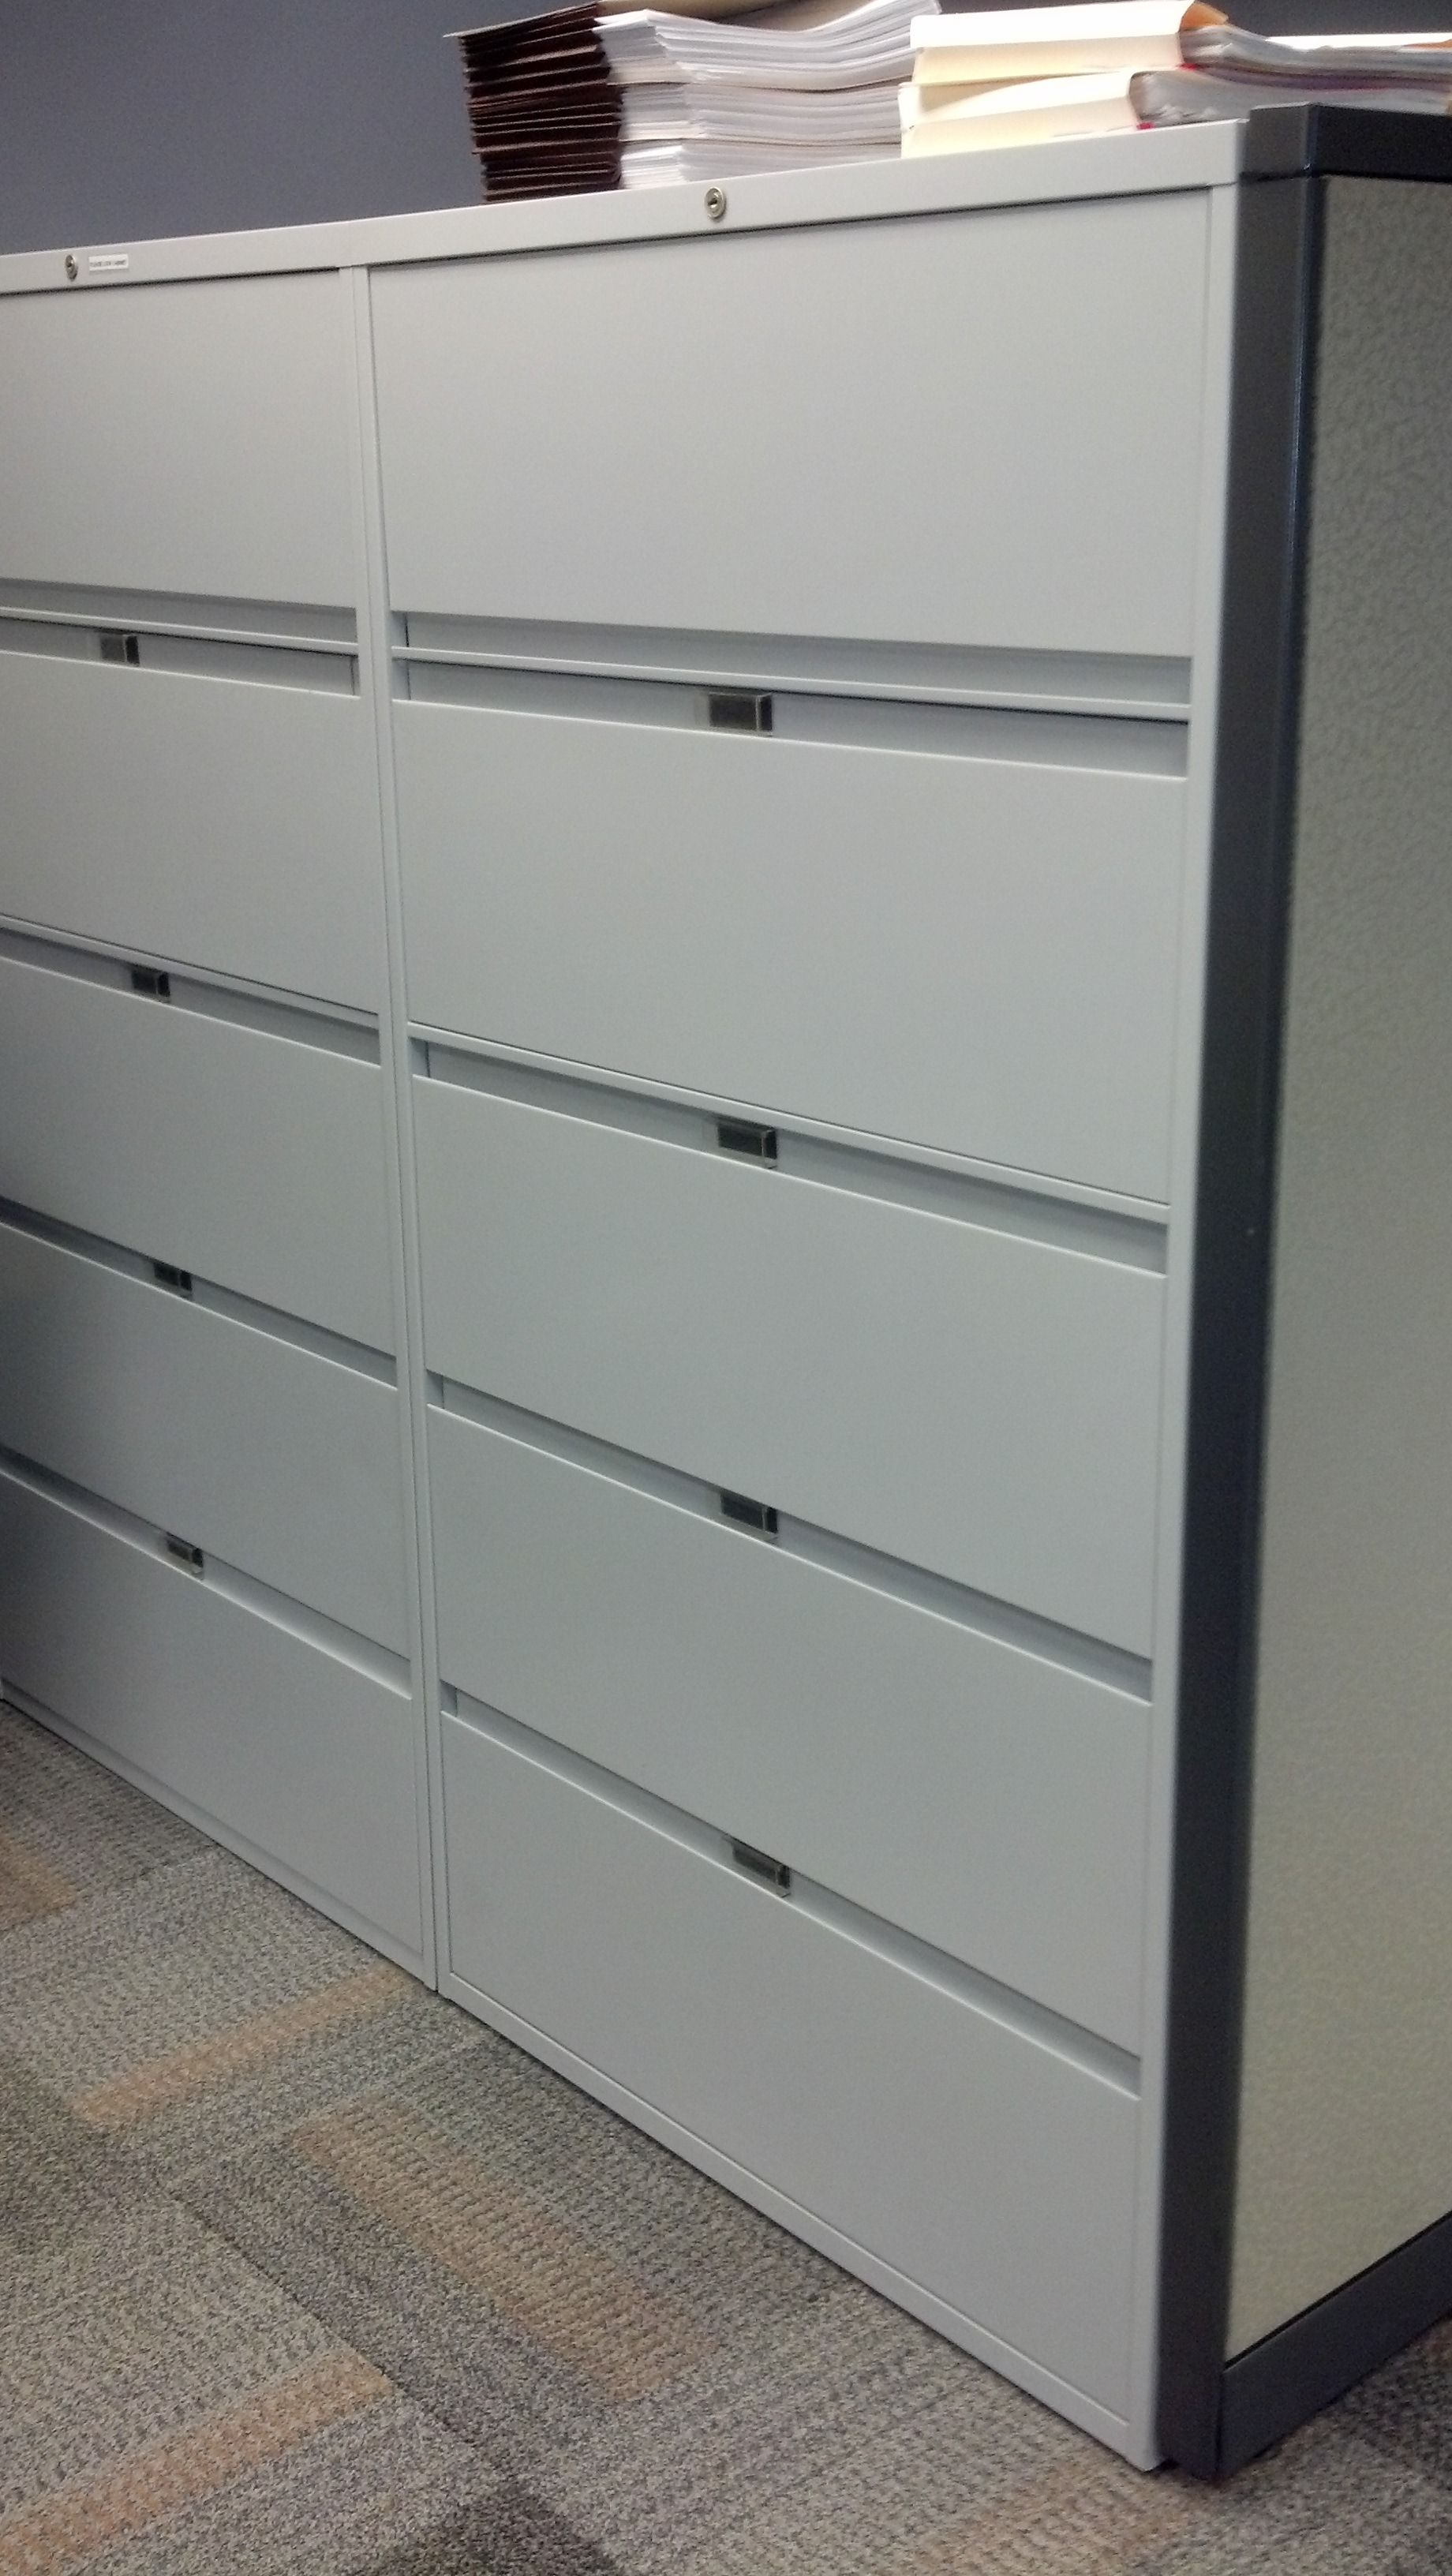 Steelcase 5 Drawer Vertical File Cabinet